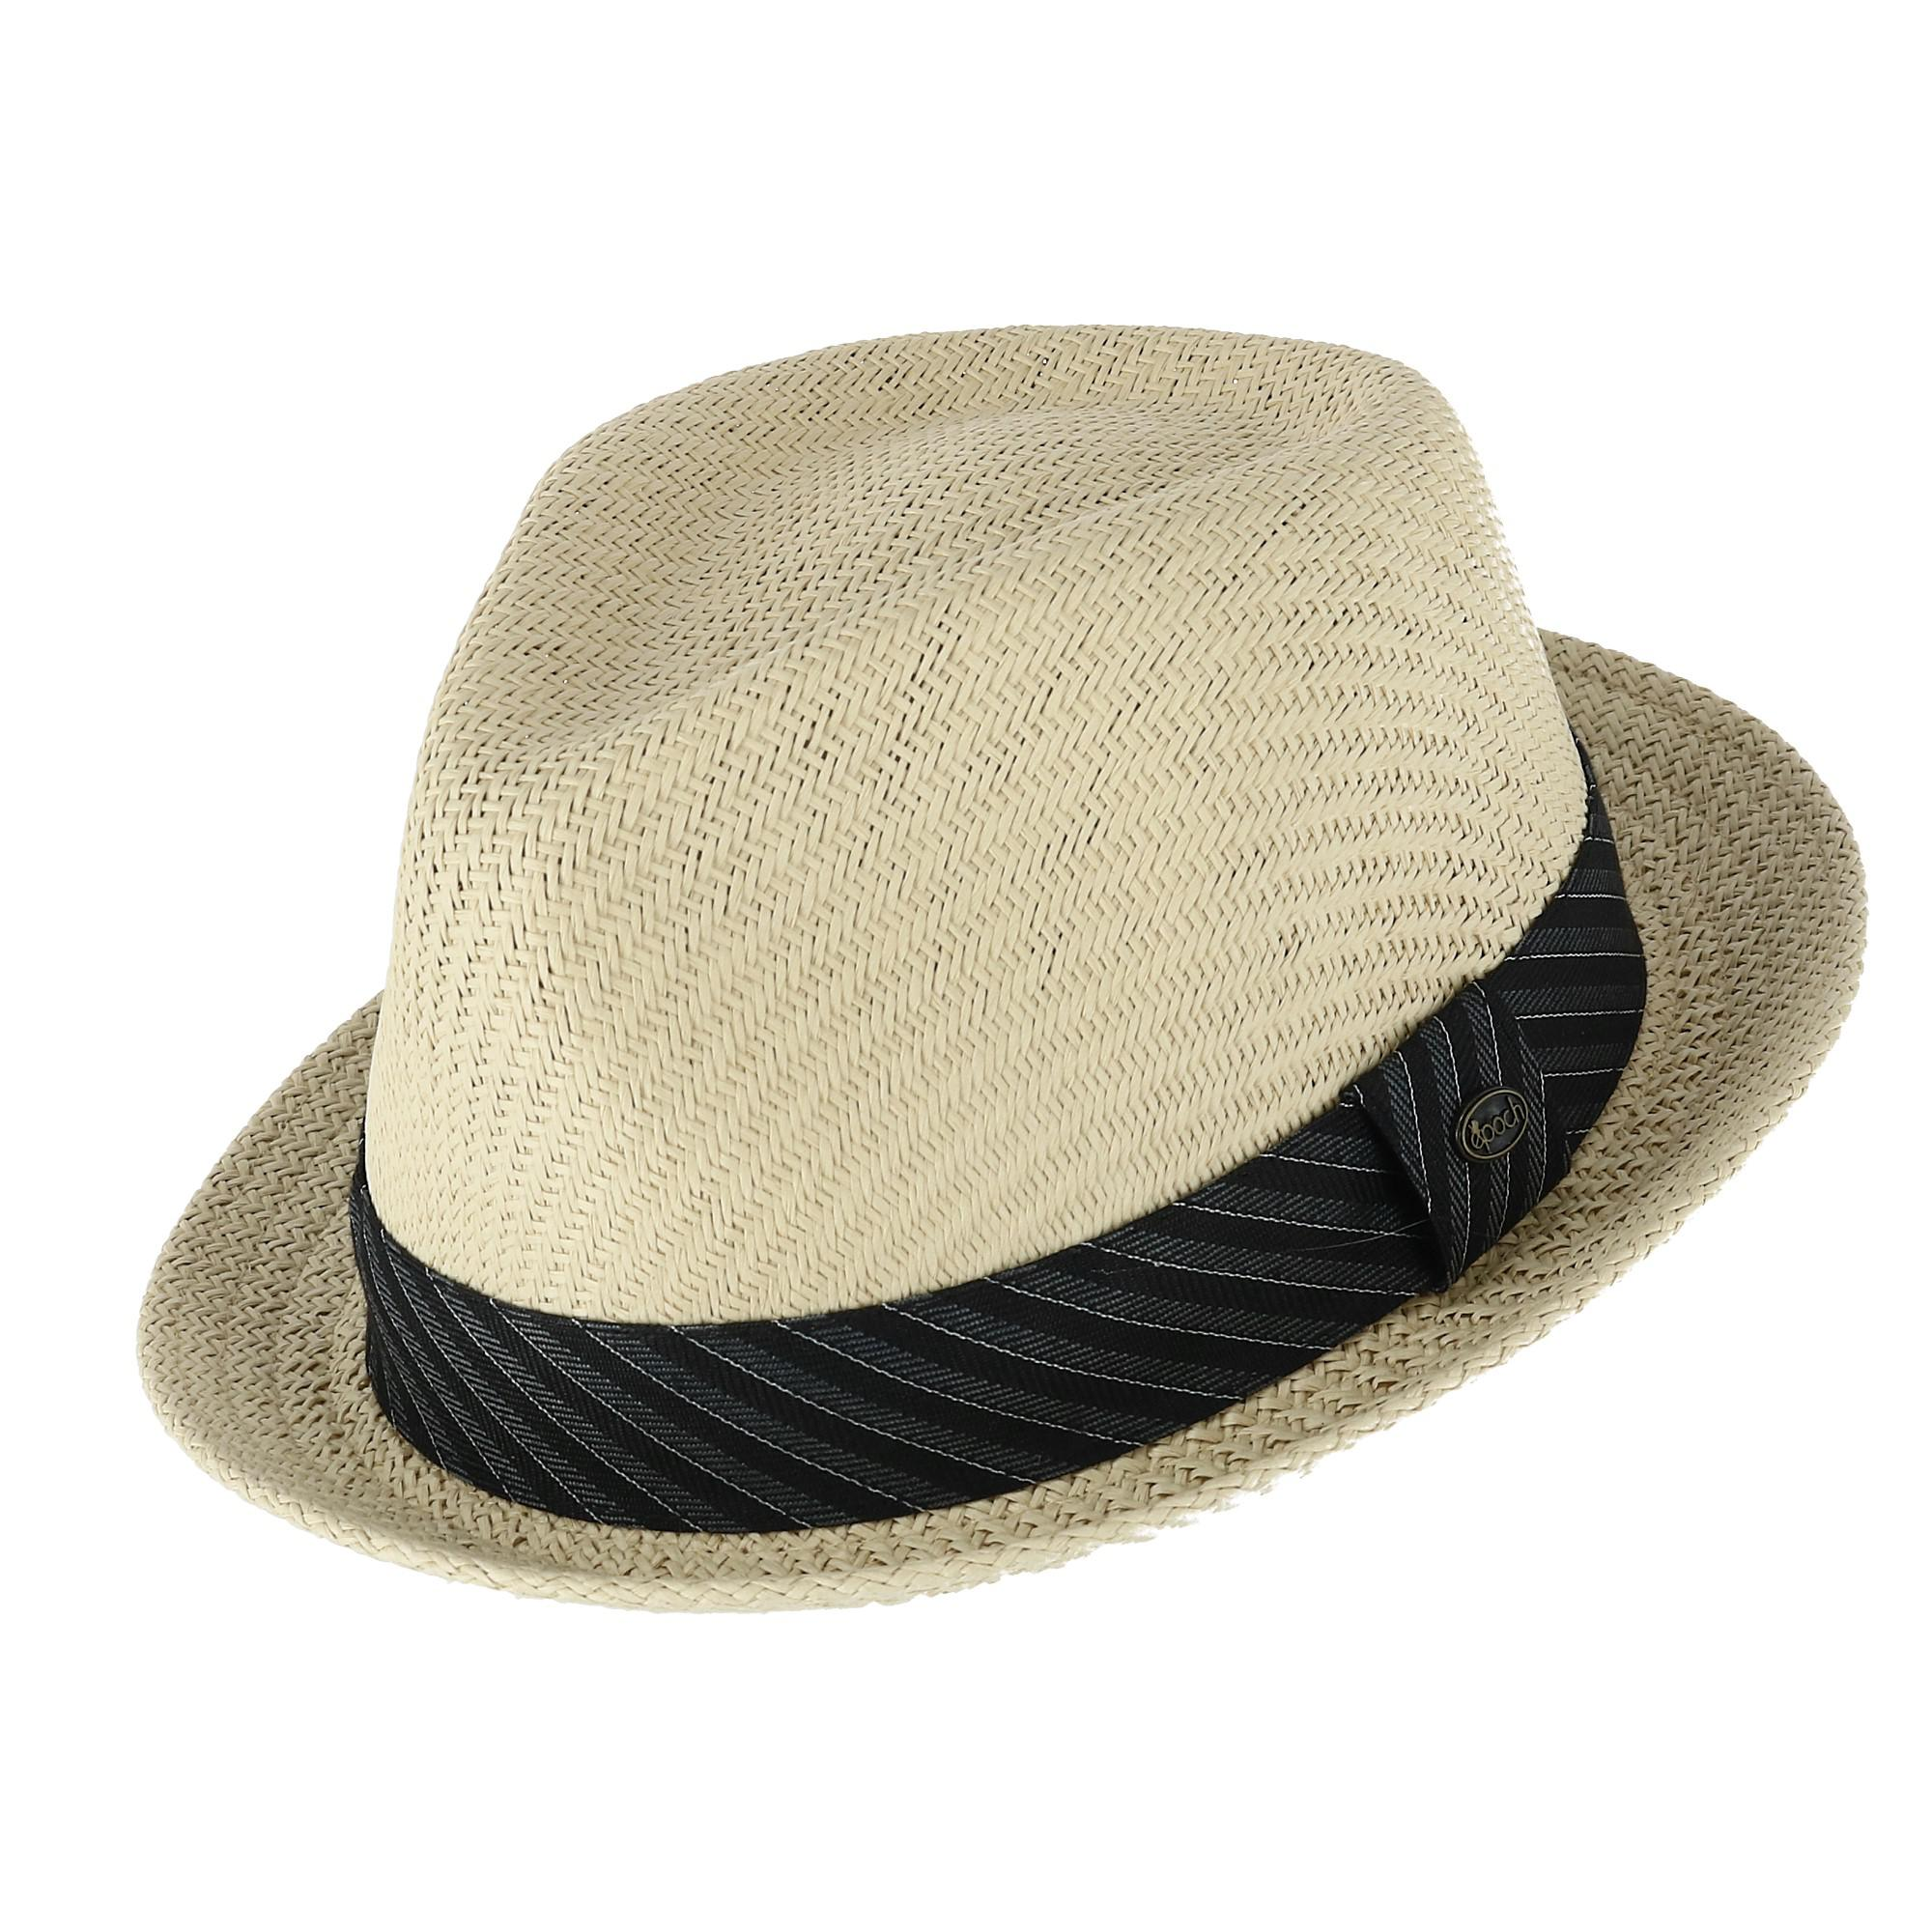 474d68a0ee Details about New Epoch Hats Company Men's Small Brim Fedora with Striped  Fabric Brand